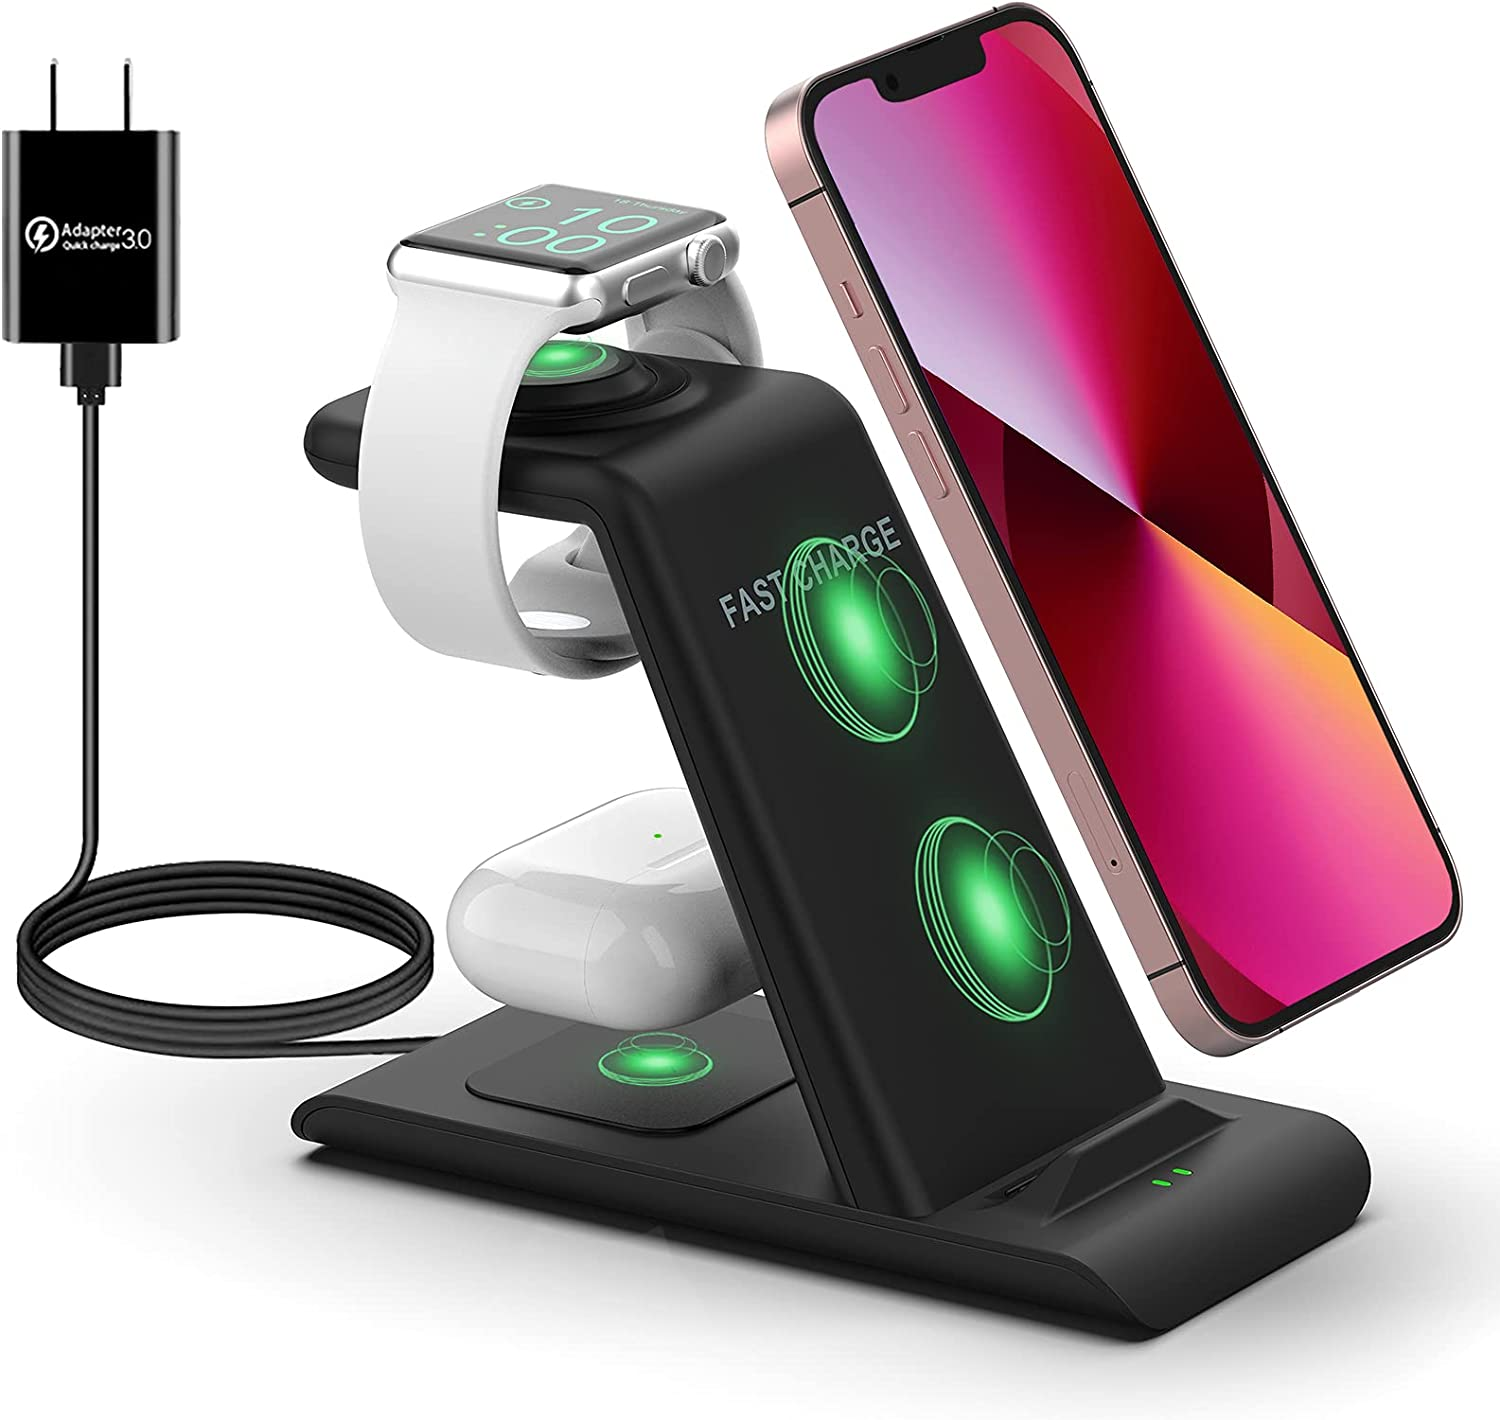 Wireless Charging Station for Apple Products 3 in 1 QI Wireless Charger Stand Dock Compatible with Apple Watch AirPods 3/2/Pro iPhone 13/12/11/Pro Max/X/XS/XR Multiple Devices Fast Wireless Charging